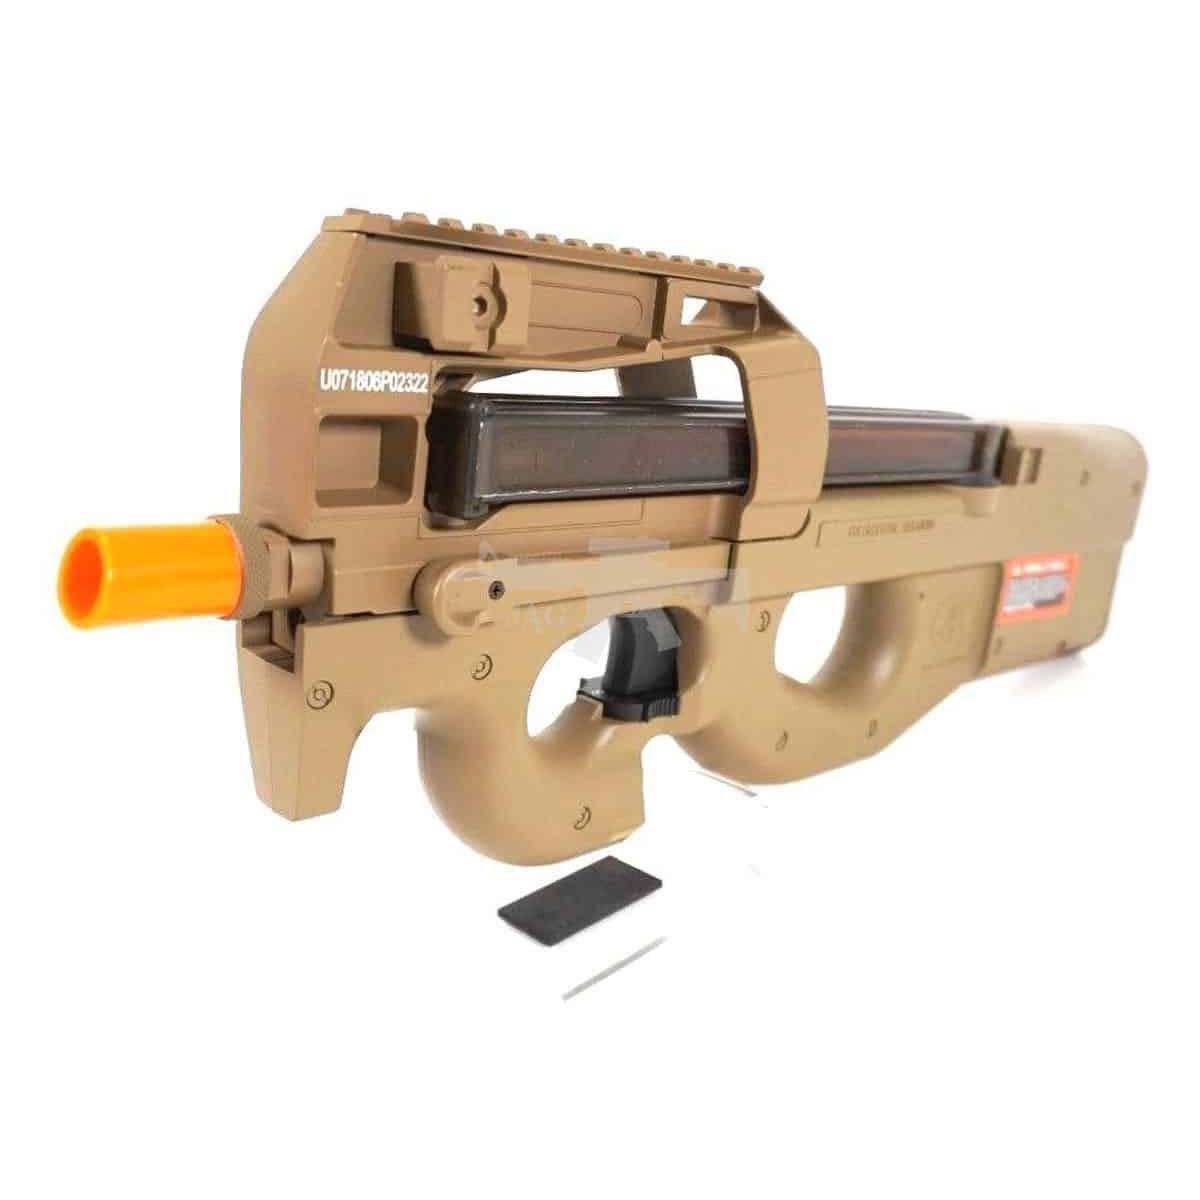 Uploaded ToFN HERSTAL P90 METAL POLYMER AIRSOFT ELECTRIC GUN IN TAN